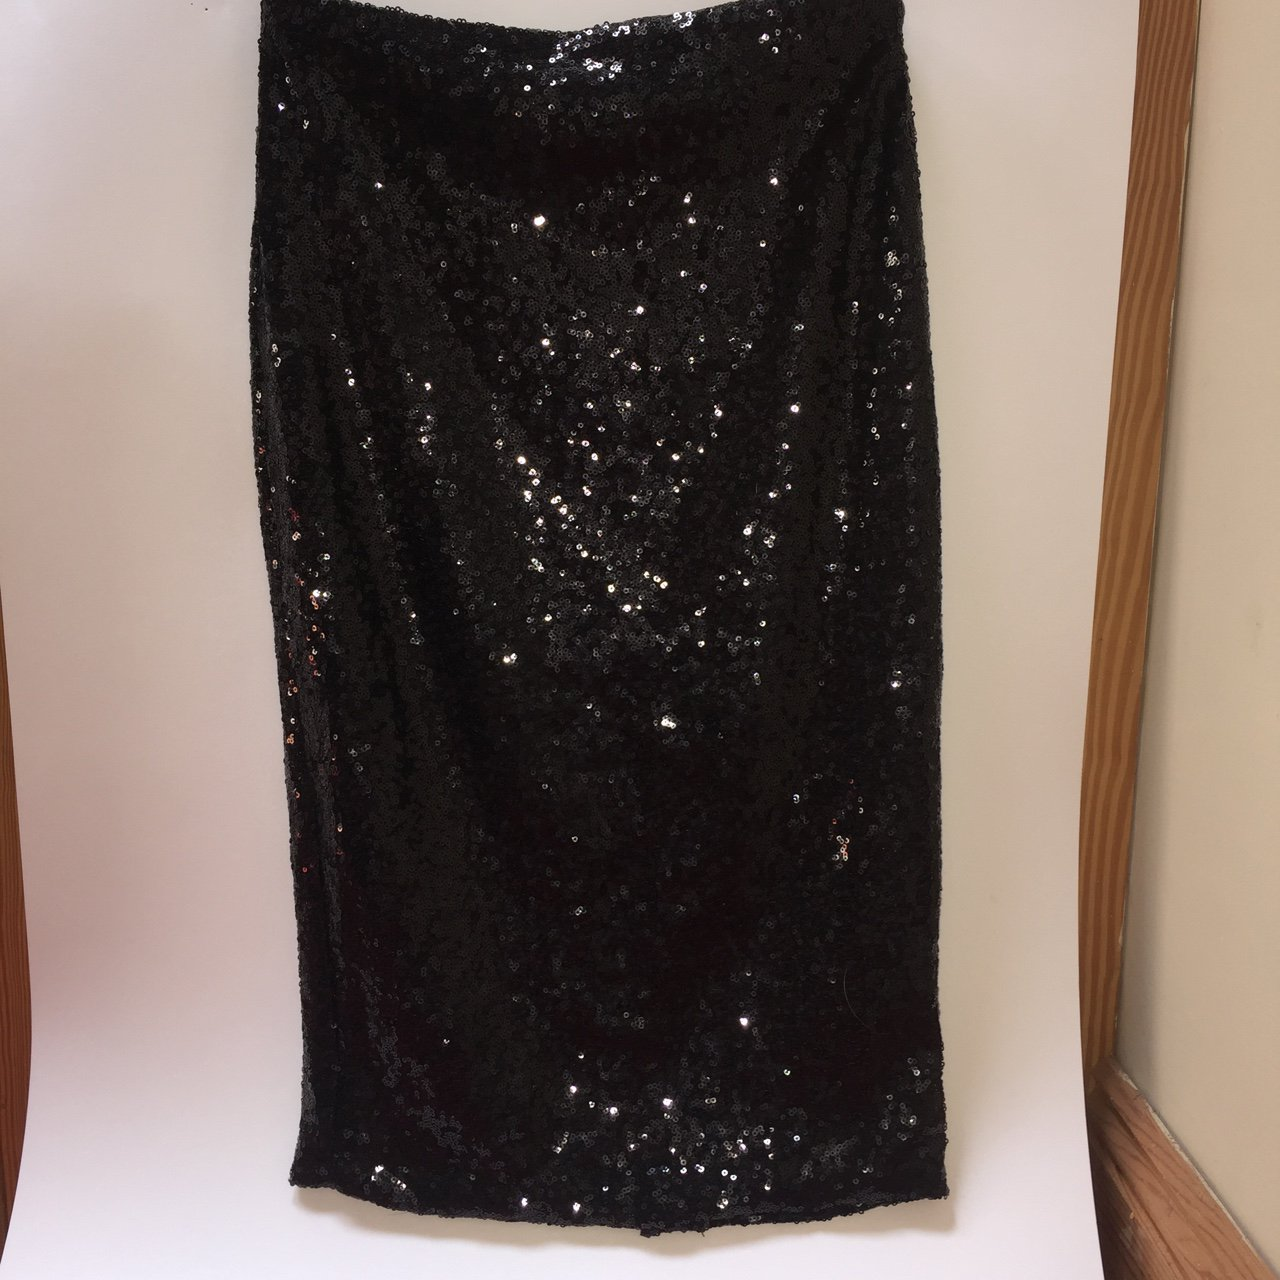 7bc94f9210 Black sequin misguided midi skirt. Size 6. Worn a few times. - Depop